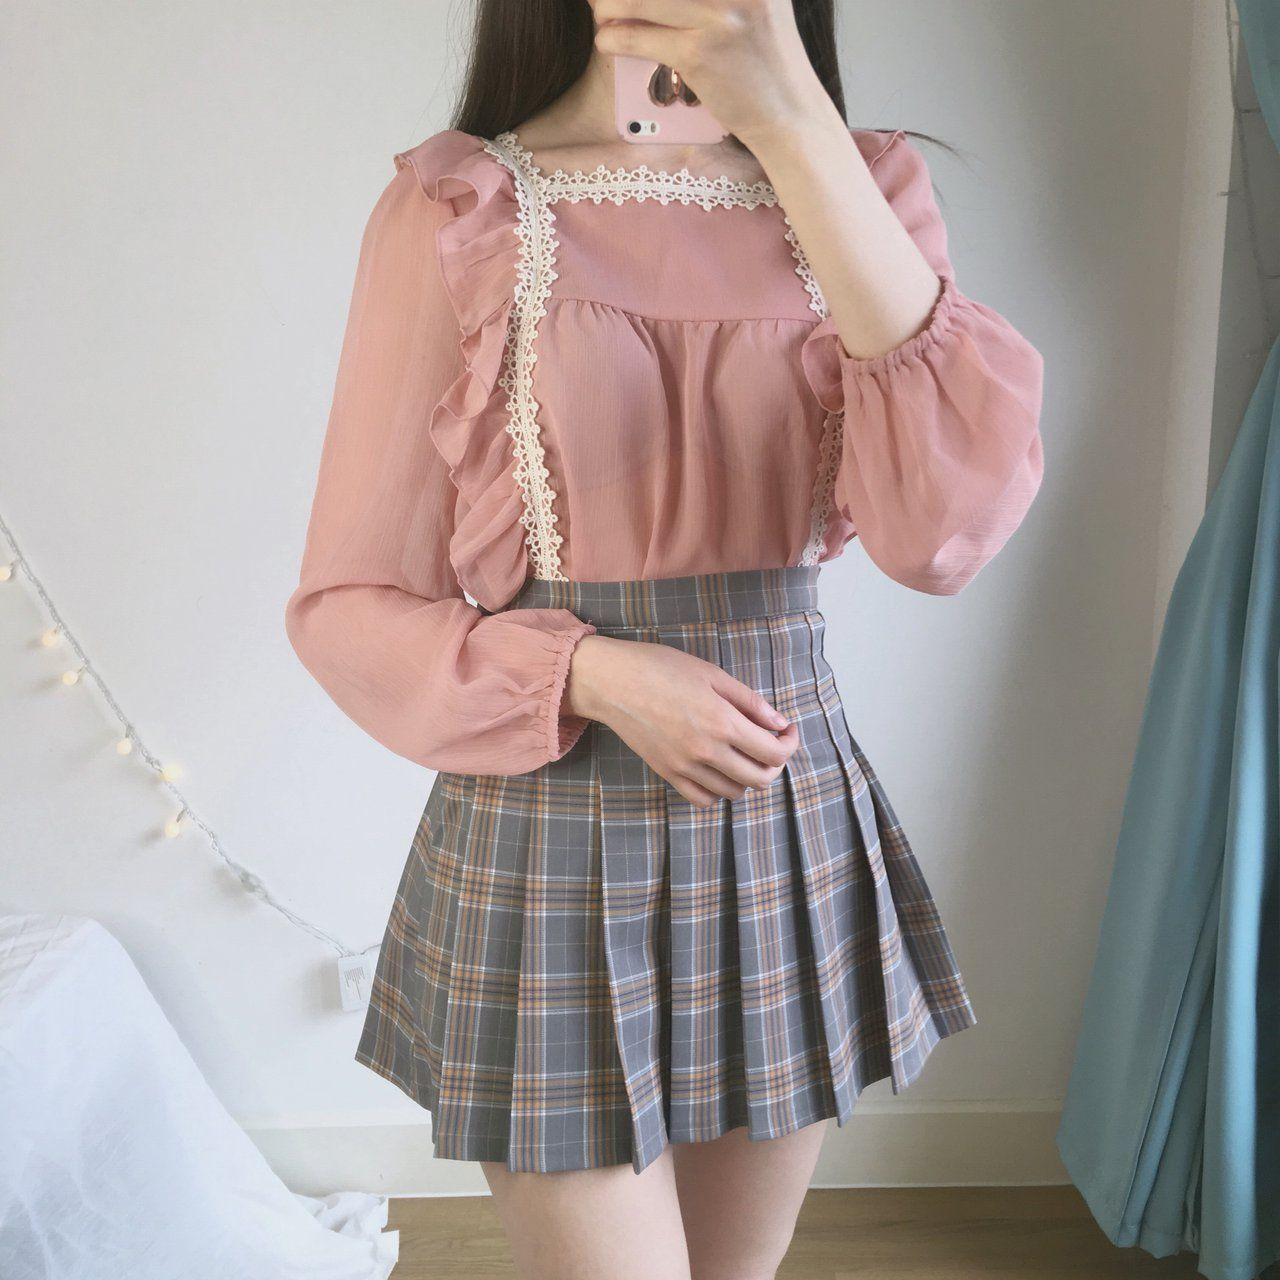 934c2dd9e5 🌸 Romantic pink shirring lace blouse 🌸 Slightly see dusty - Depop ...